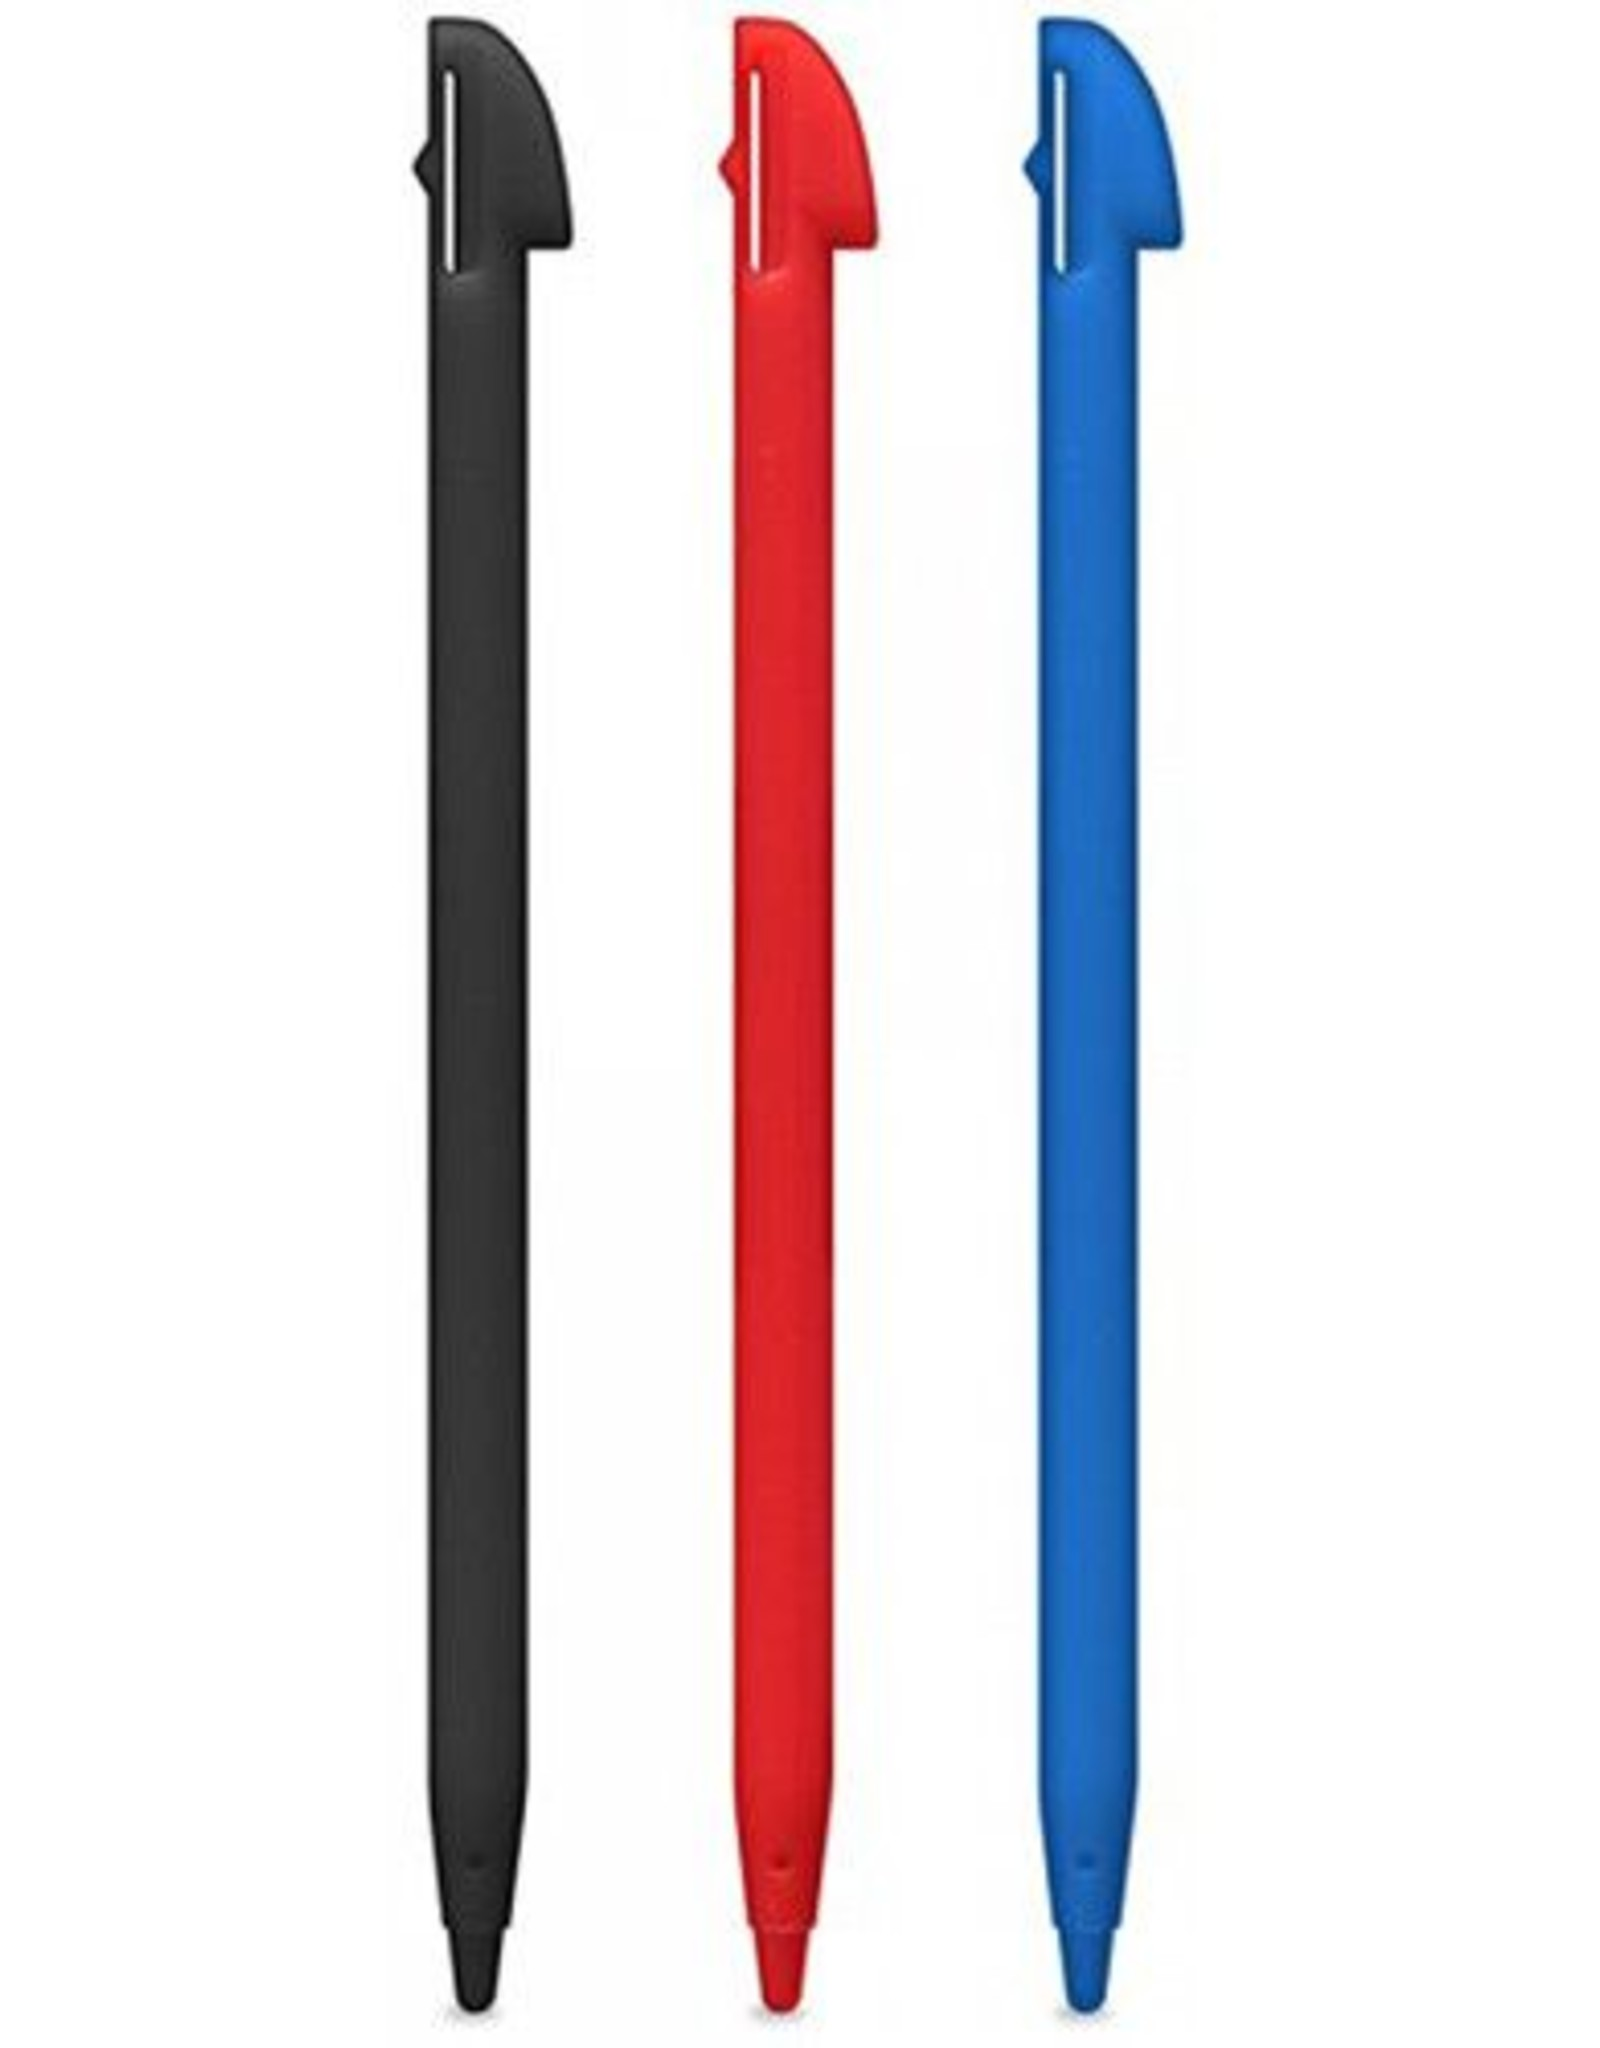 3DS XL Stylus Pen